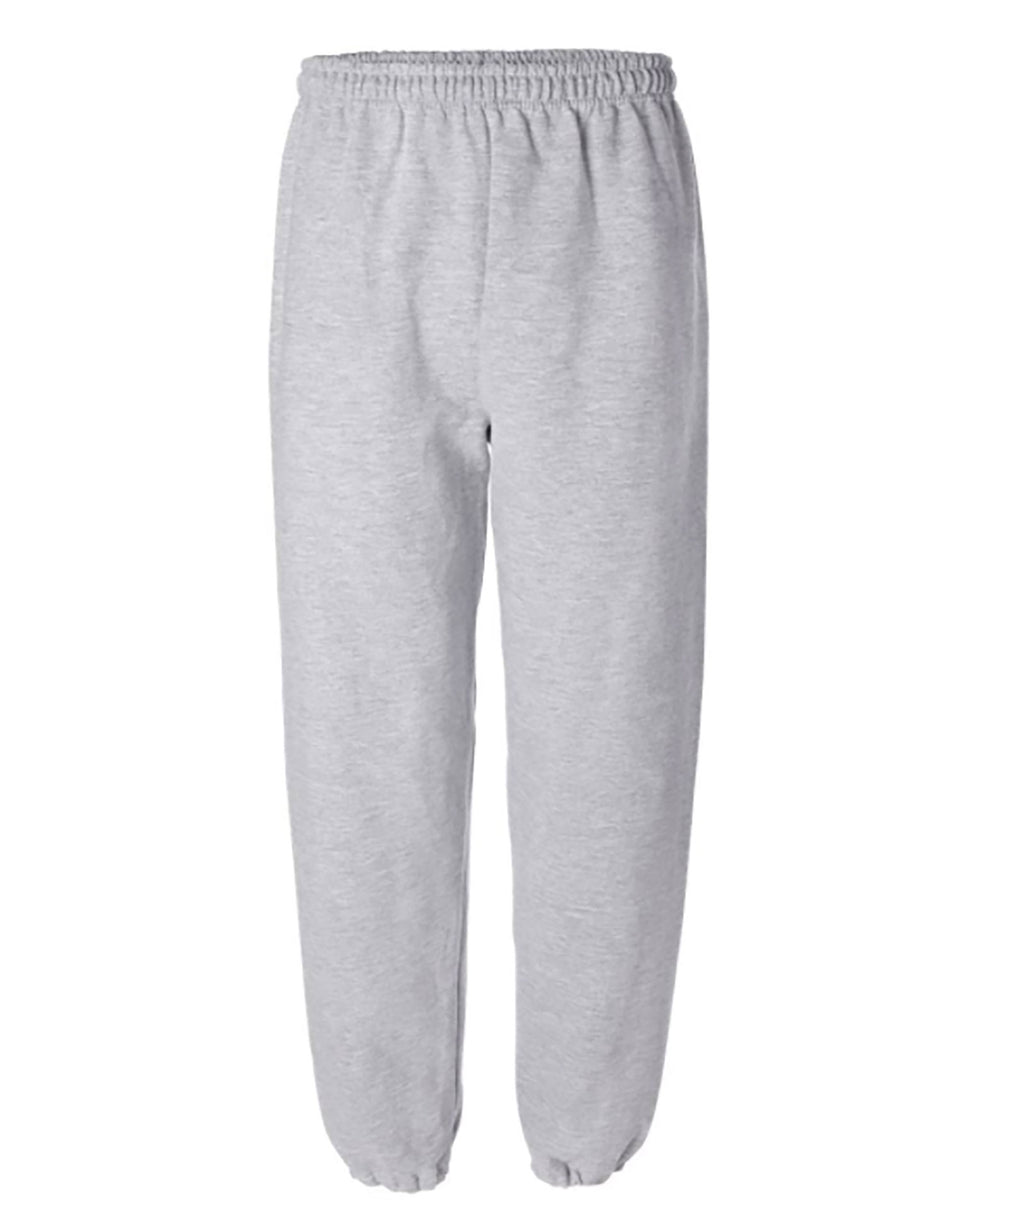 Gildan Adult Sweatpants in White, Grey or Light Grey